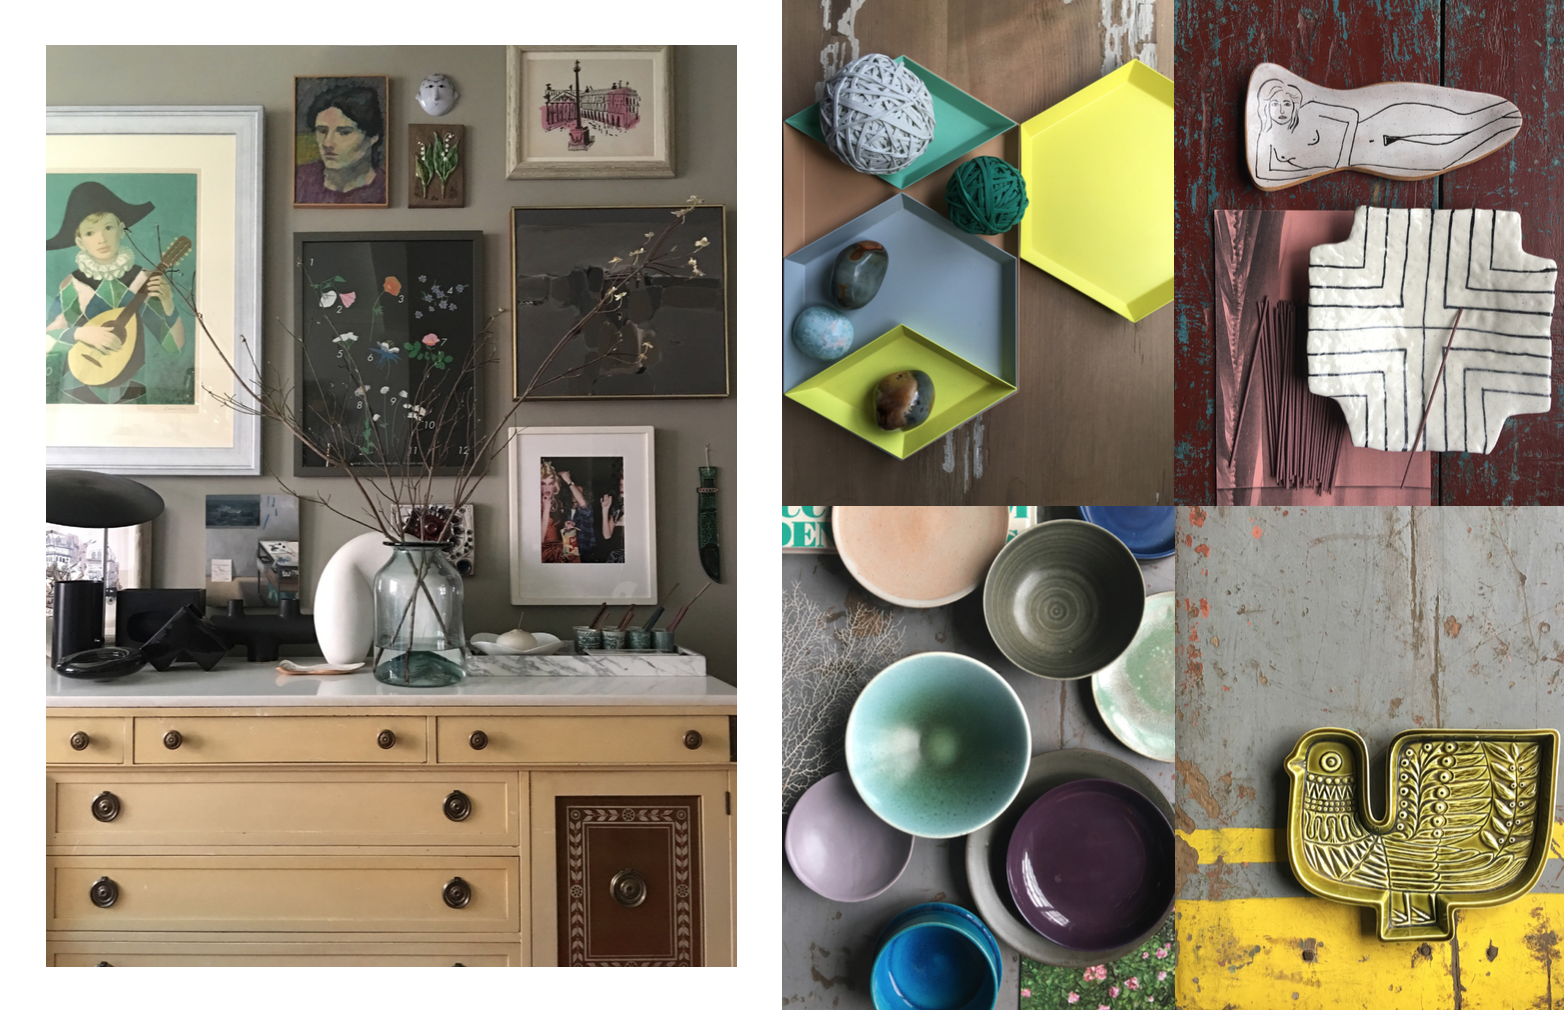 Left: My living room with a gallery of my framed artwork, Right: Detail images:  Hay Copenhagen  trays with random objects, Ceramic objects including bowls by  Christiane Perrochon , A vintage bird platter by  Poole Pottery   Photography: Marcus Hay for SMH, Inc